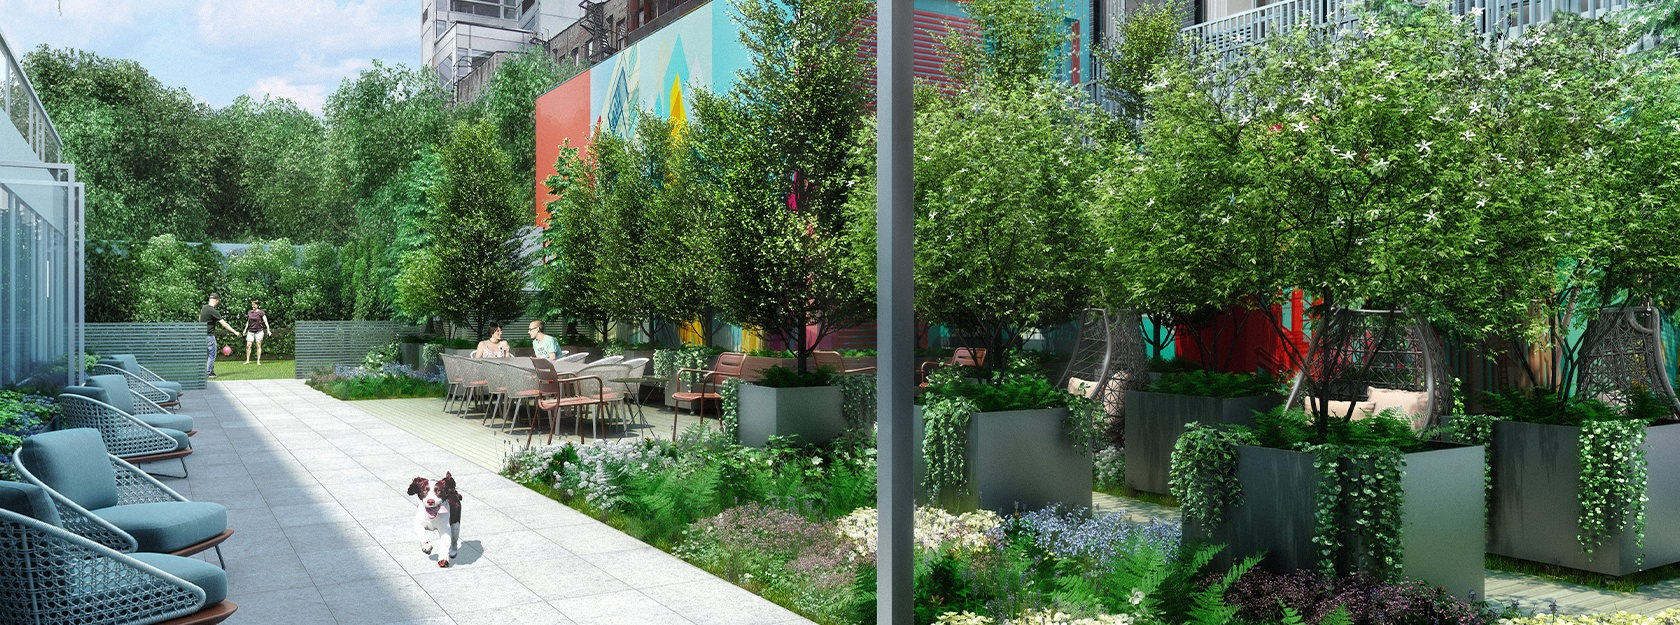 Eve East Village garden with lounge chairs